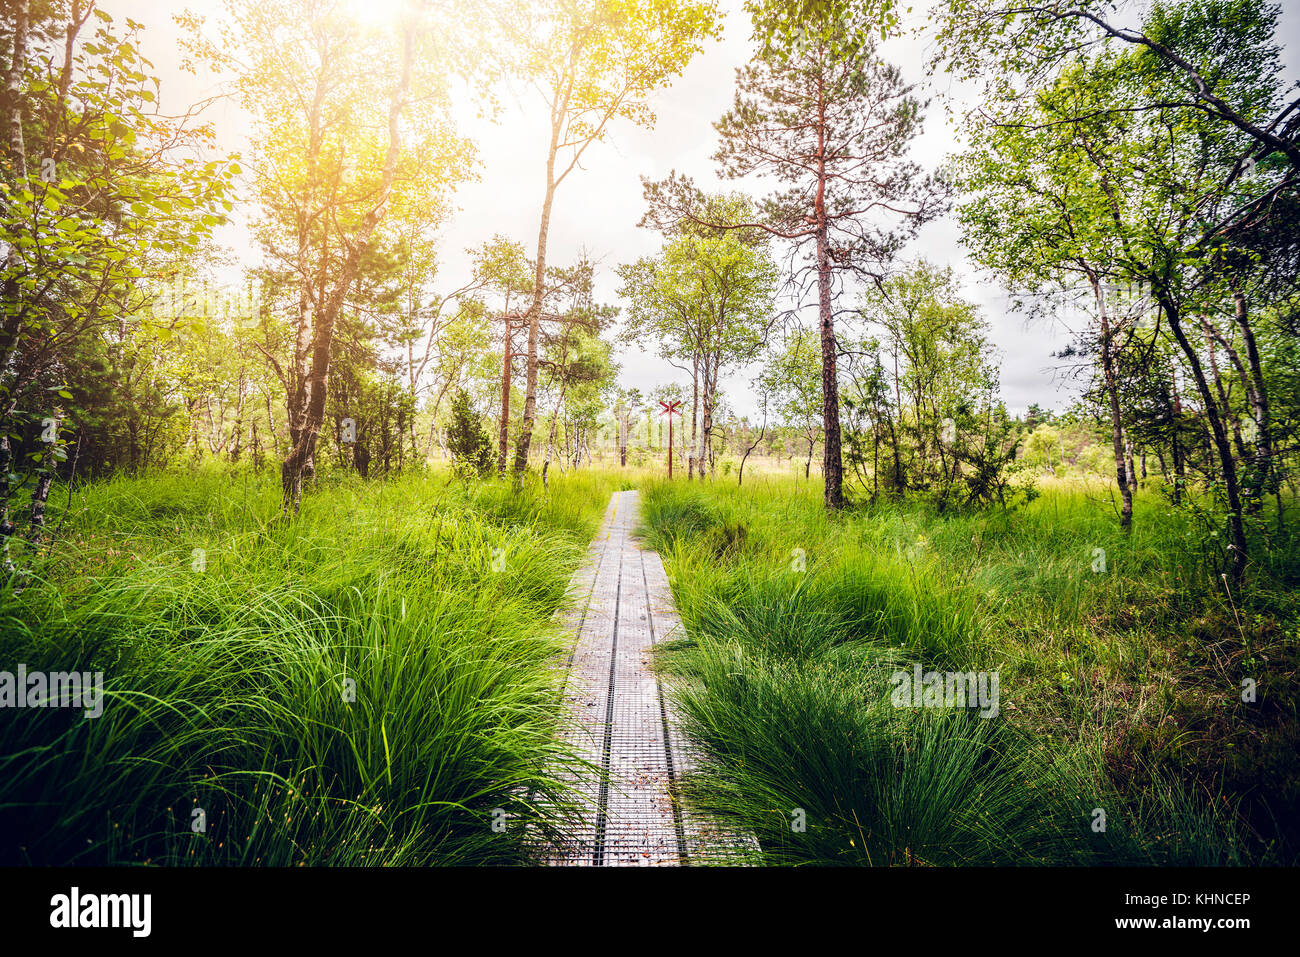 Wooden trail in a swamp area with tall green grass and sunlight trhough the trees - Stock Image